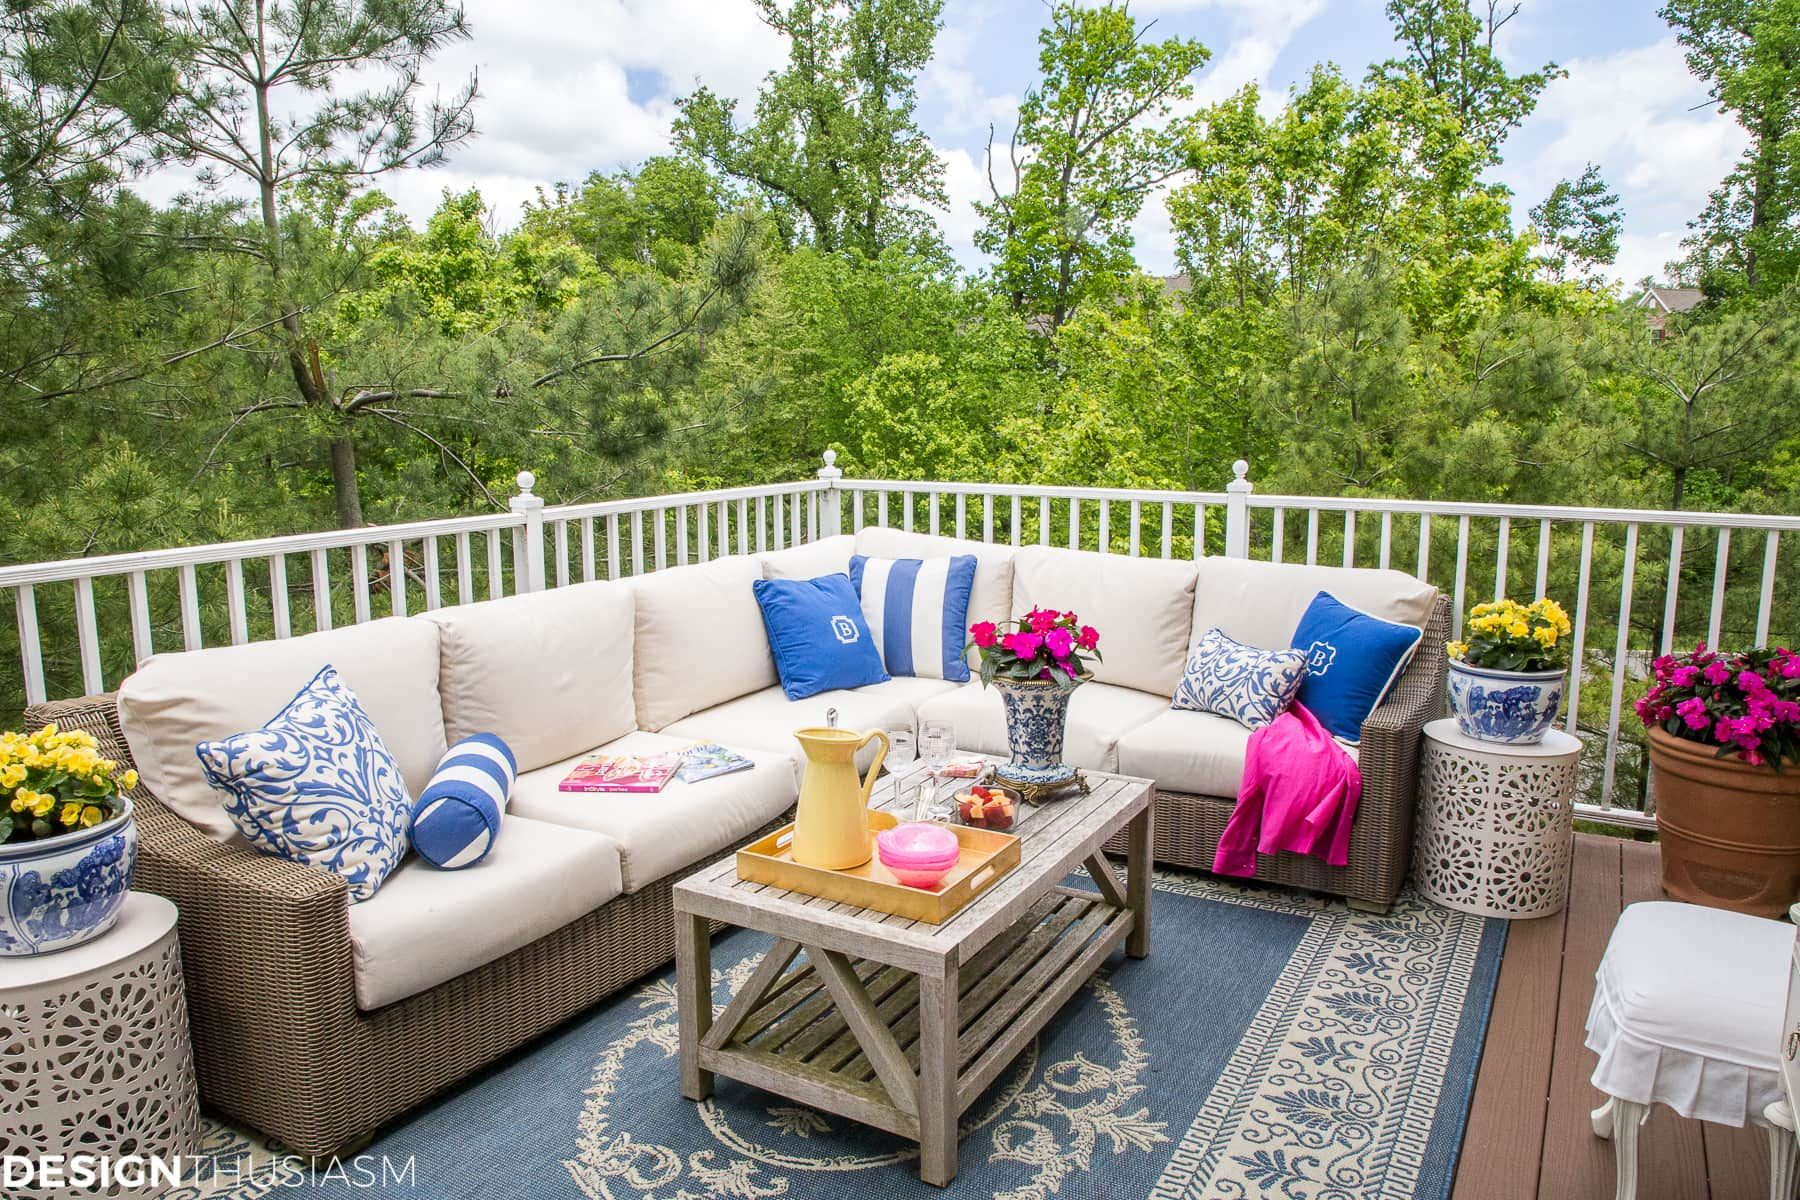 Outdoor Living Spaces: Updating the Patio with Summer ... on Cheap Outdoor Living id=45256